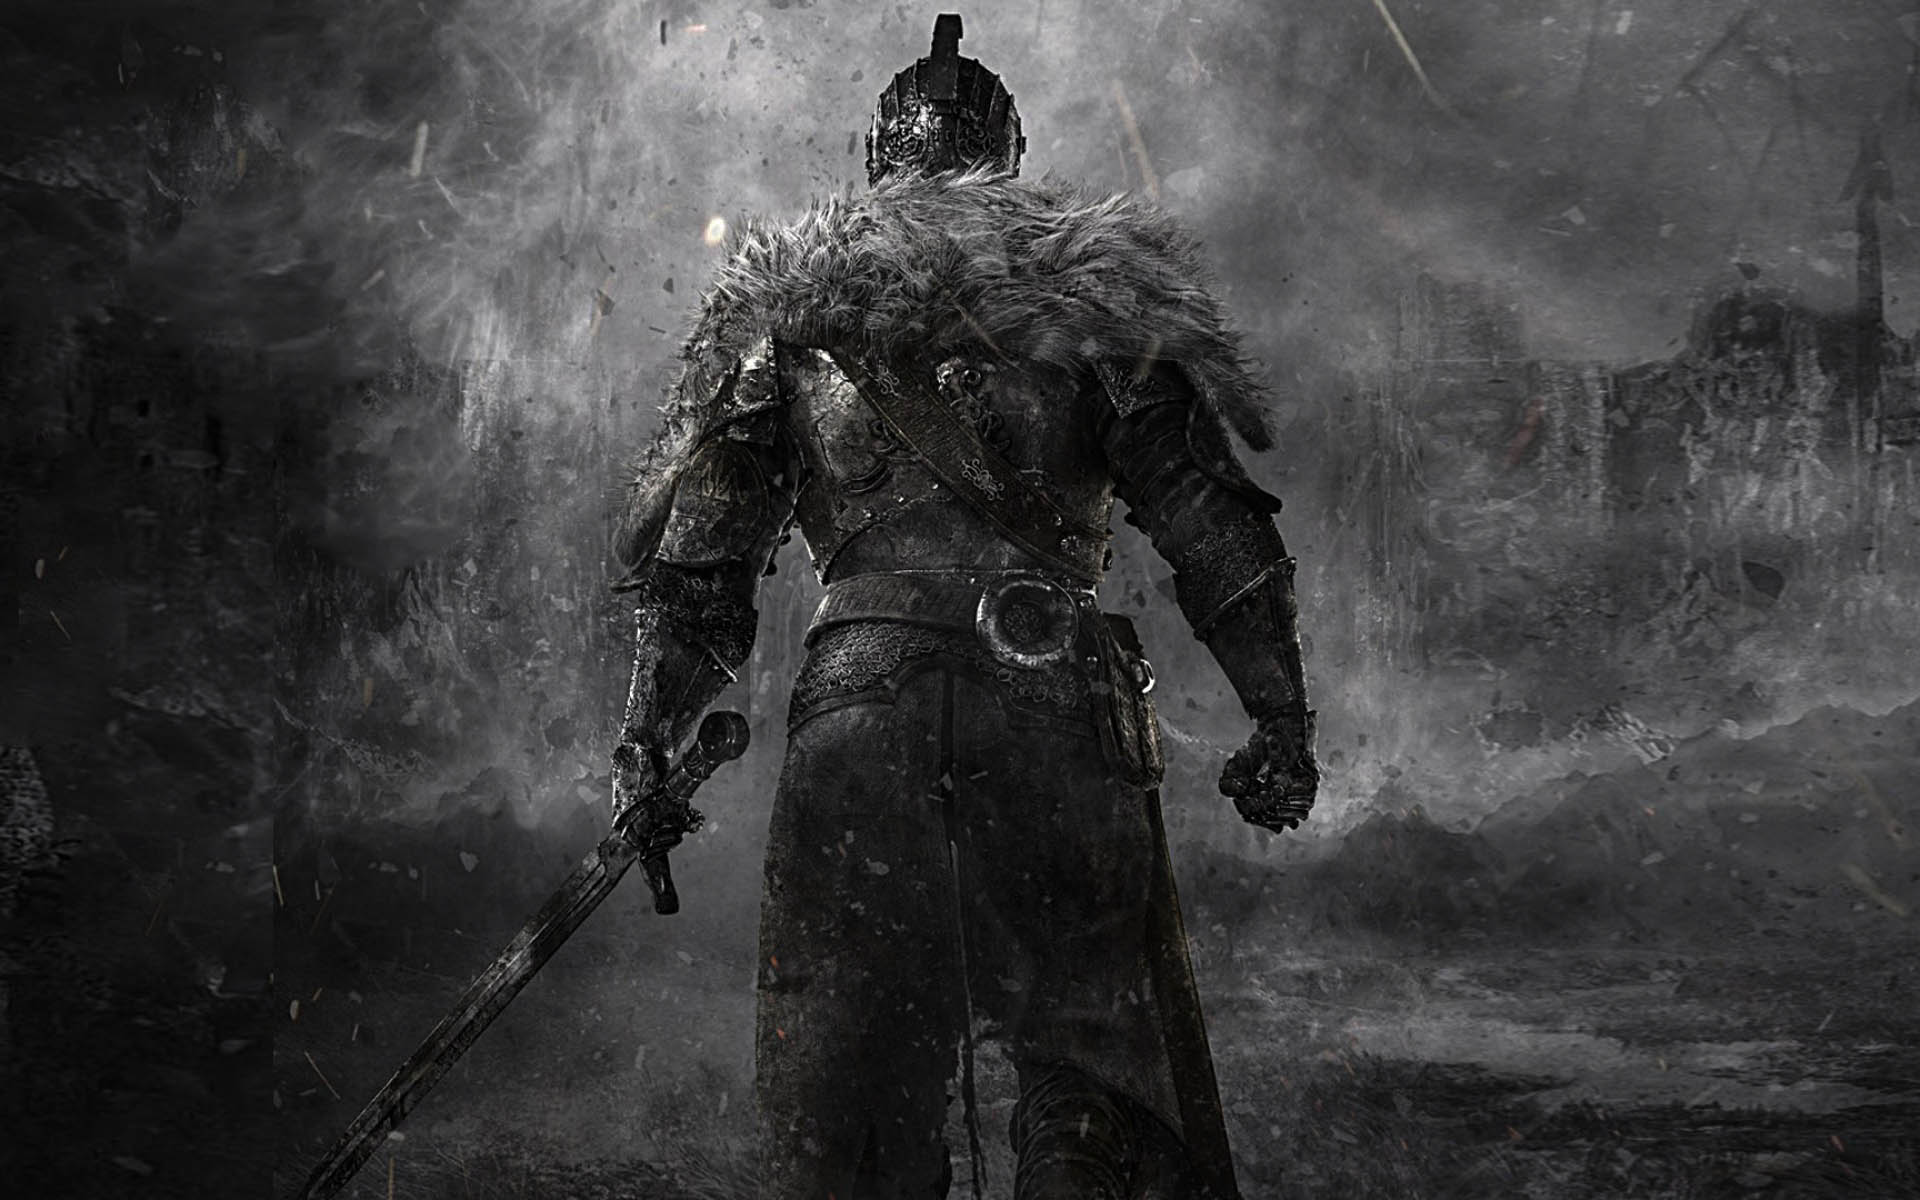 Dark Souls 2 Wallpapers Hd Download: Dark Souls II Out Stunning Wallpapers (High Quality)